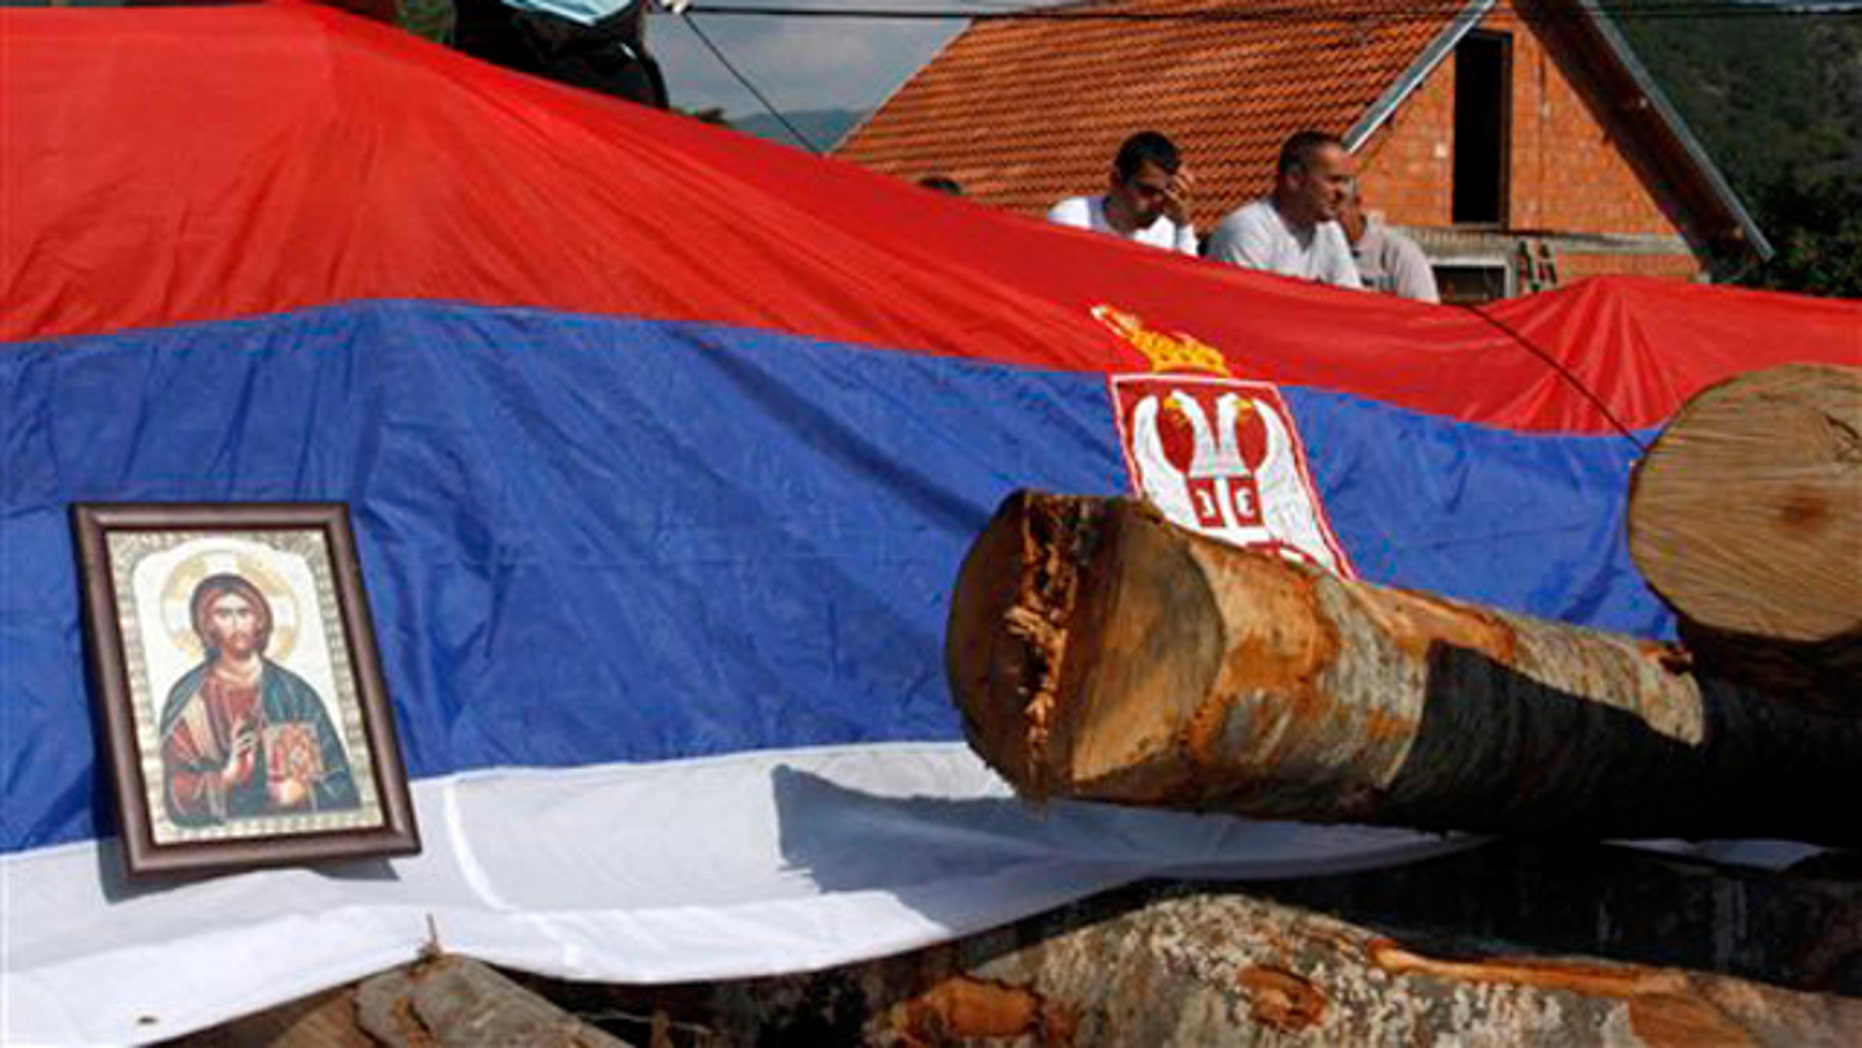 An icon and Serbian flag cover a barricade on the road near the village of Zupce, northern Kosovo, Monday, Aug. 1, 2011. A NATO spokesman in Kosovo says the military alliance has started removing roadblocks put up by Serbs in the country's north during a week of violence that left one Kosovo policeman dead.